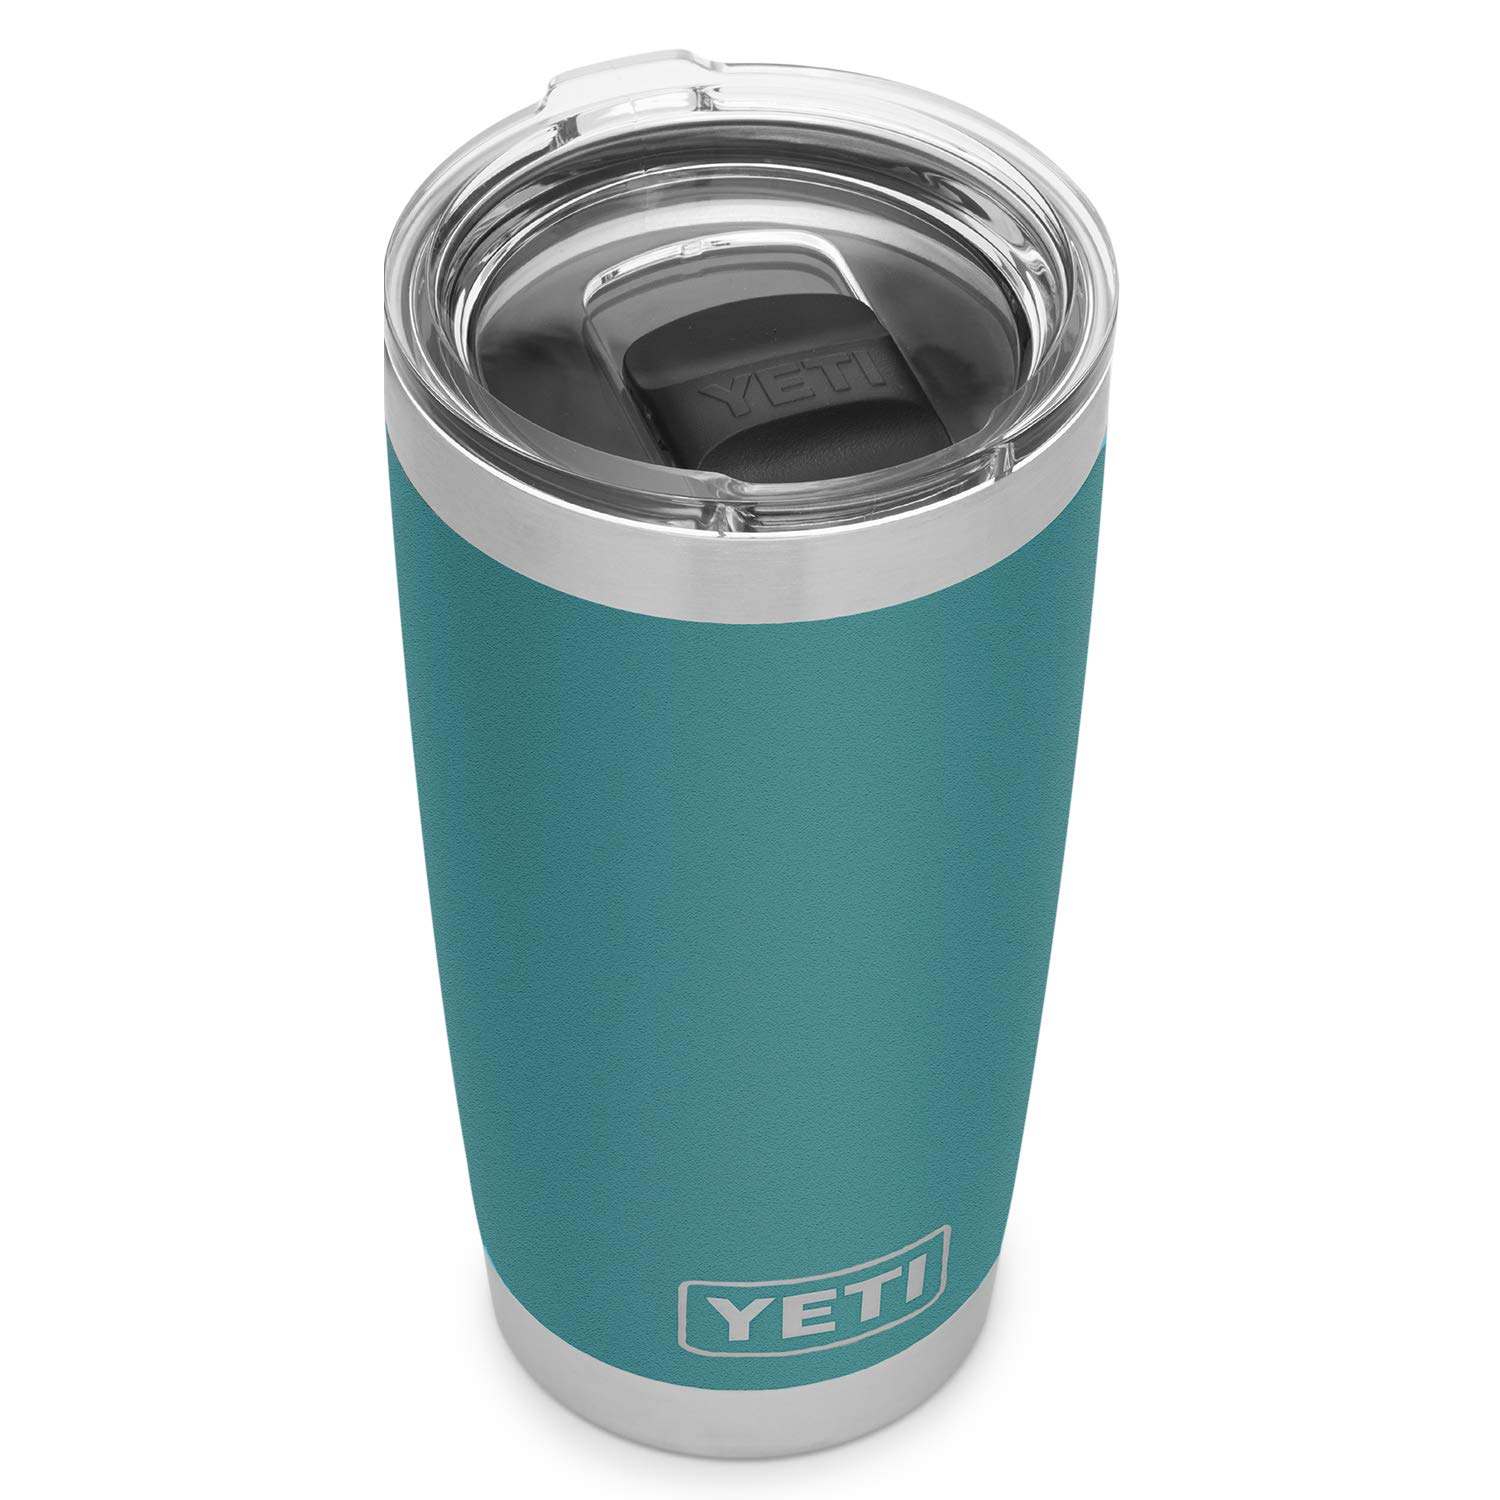 YETI Rambler 20 oz Stainless Steel Vacuum Insulated Tumbler w/MagSlider Lid, River Green by YETI